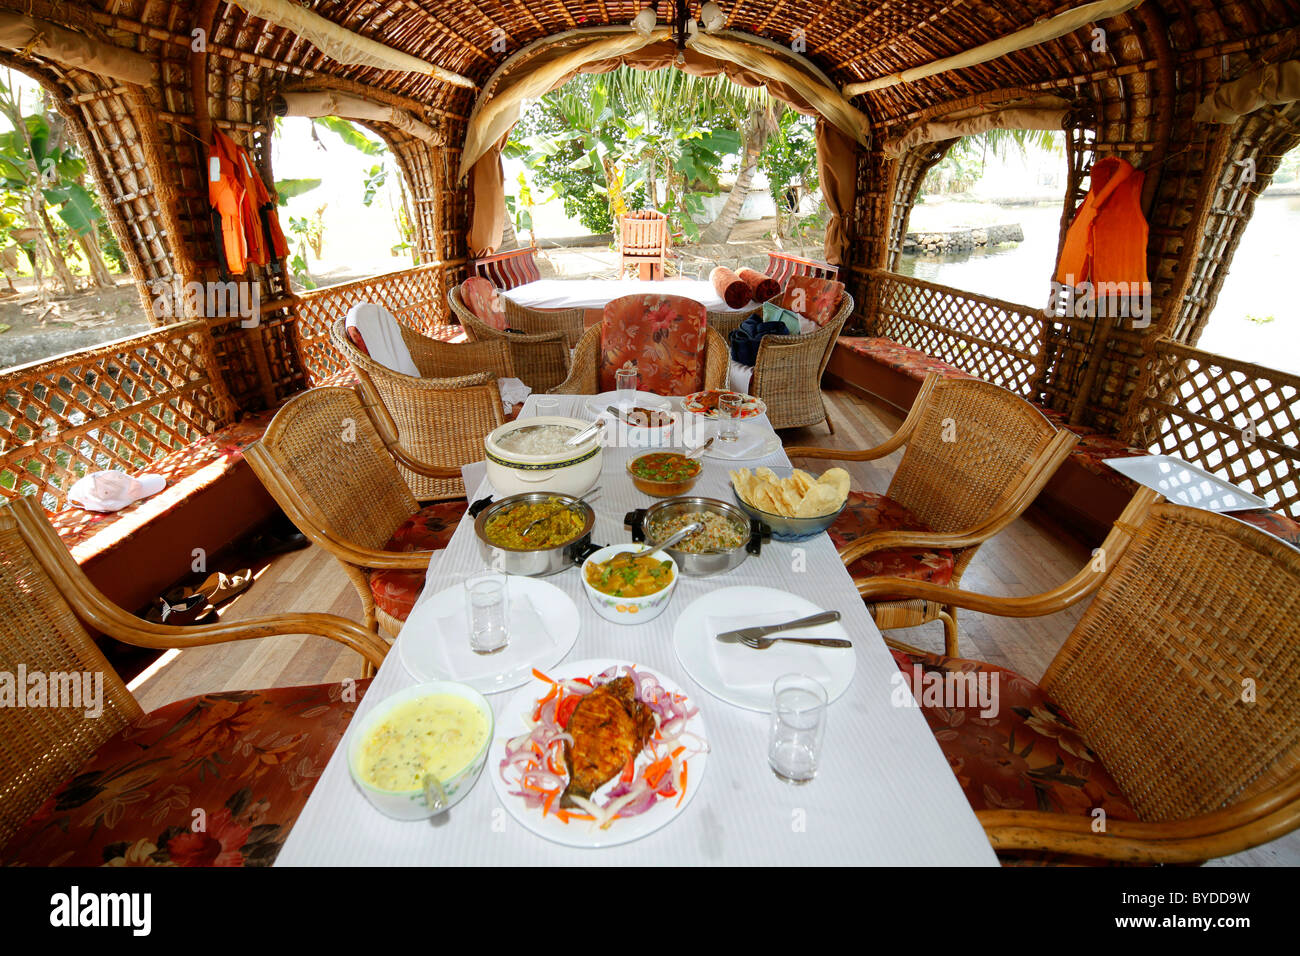 Dining table on a luxury houseboat on a canal, Haripad, Alappuzha, Alleppey, Kerala, India, Asia - Stock Image